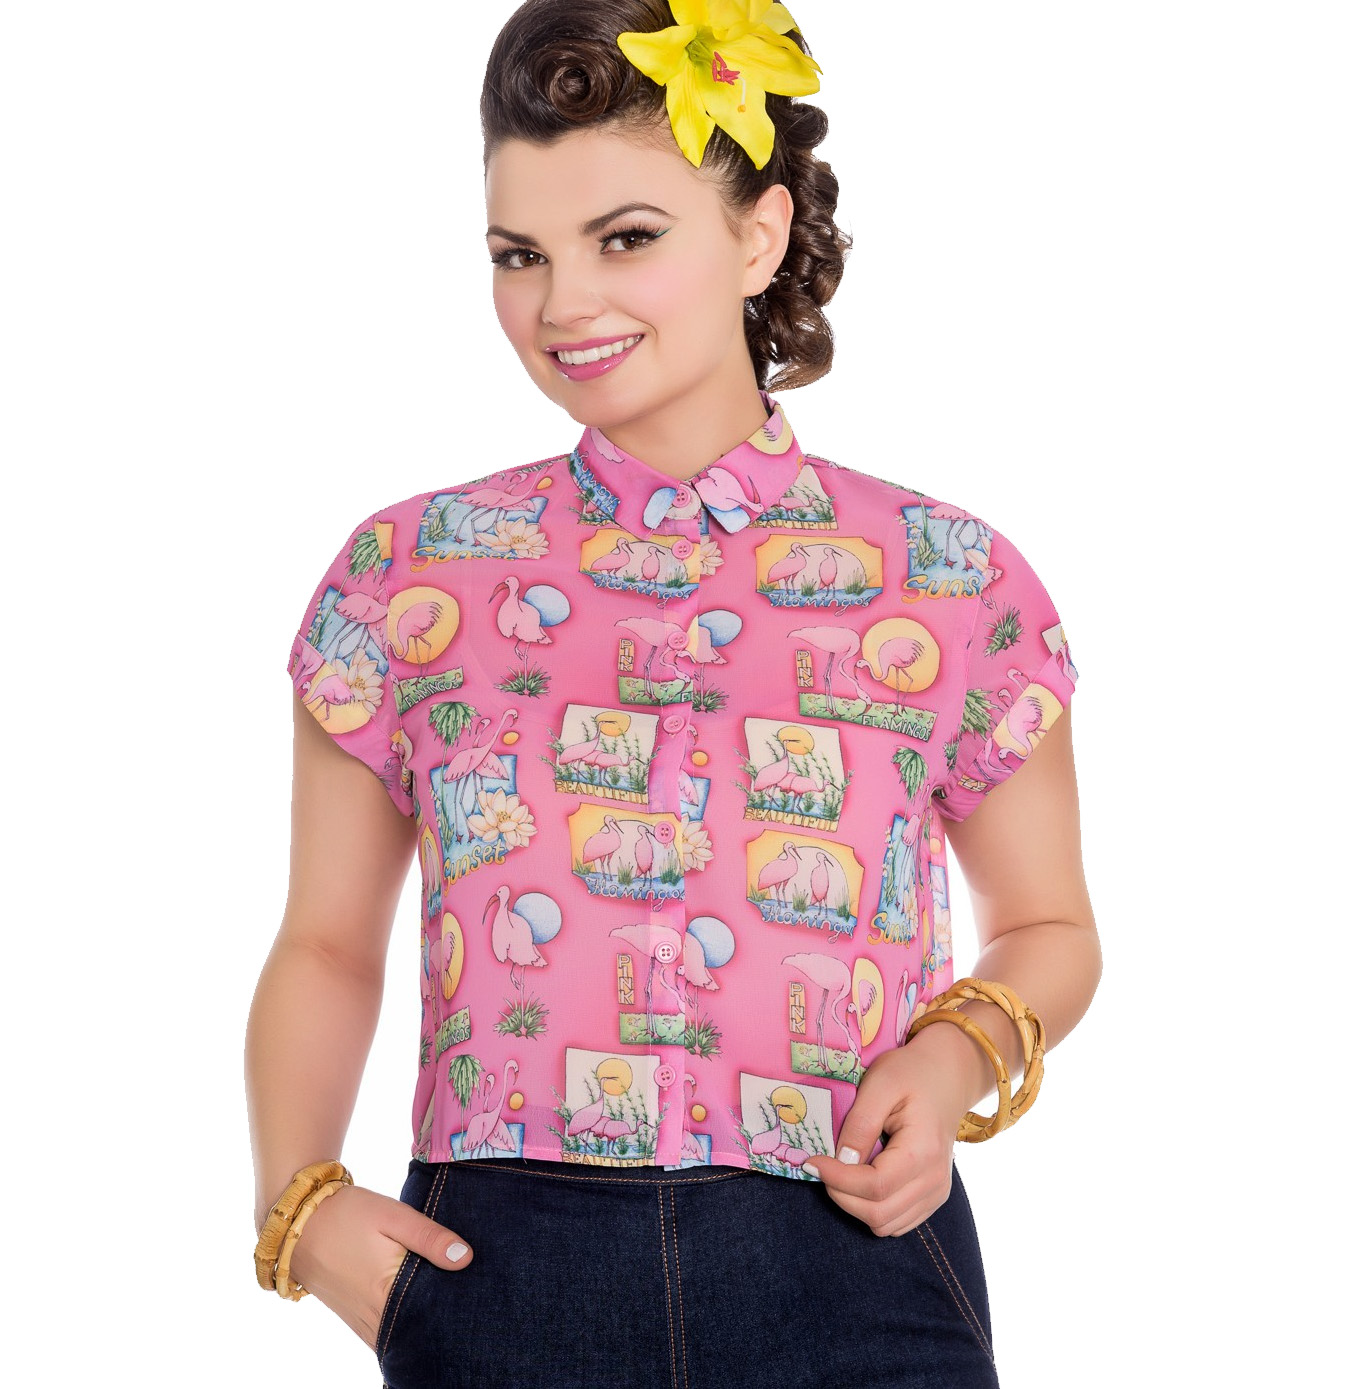 thumbnail 18 - Hell Bunny 50s Retro Top Pink Flamingo MAXINE Cropped Blouse Shirt All Sizes